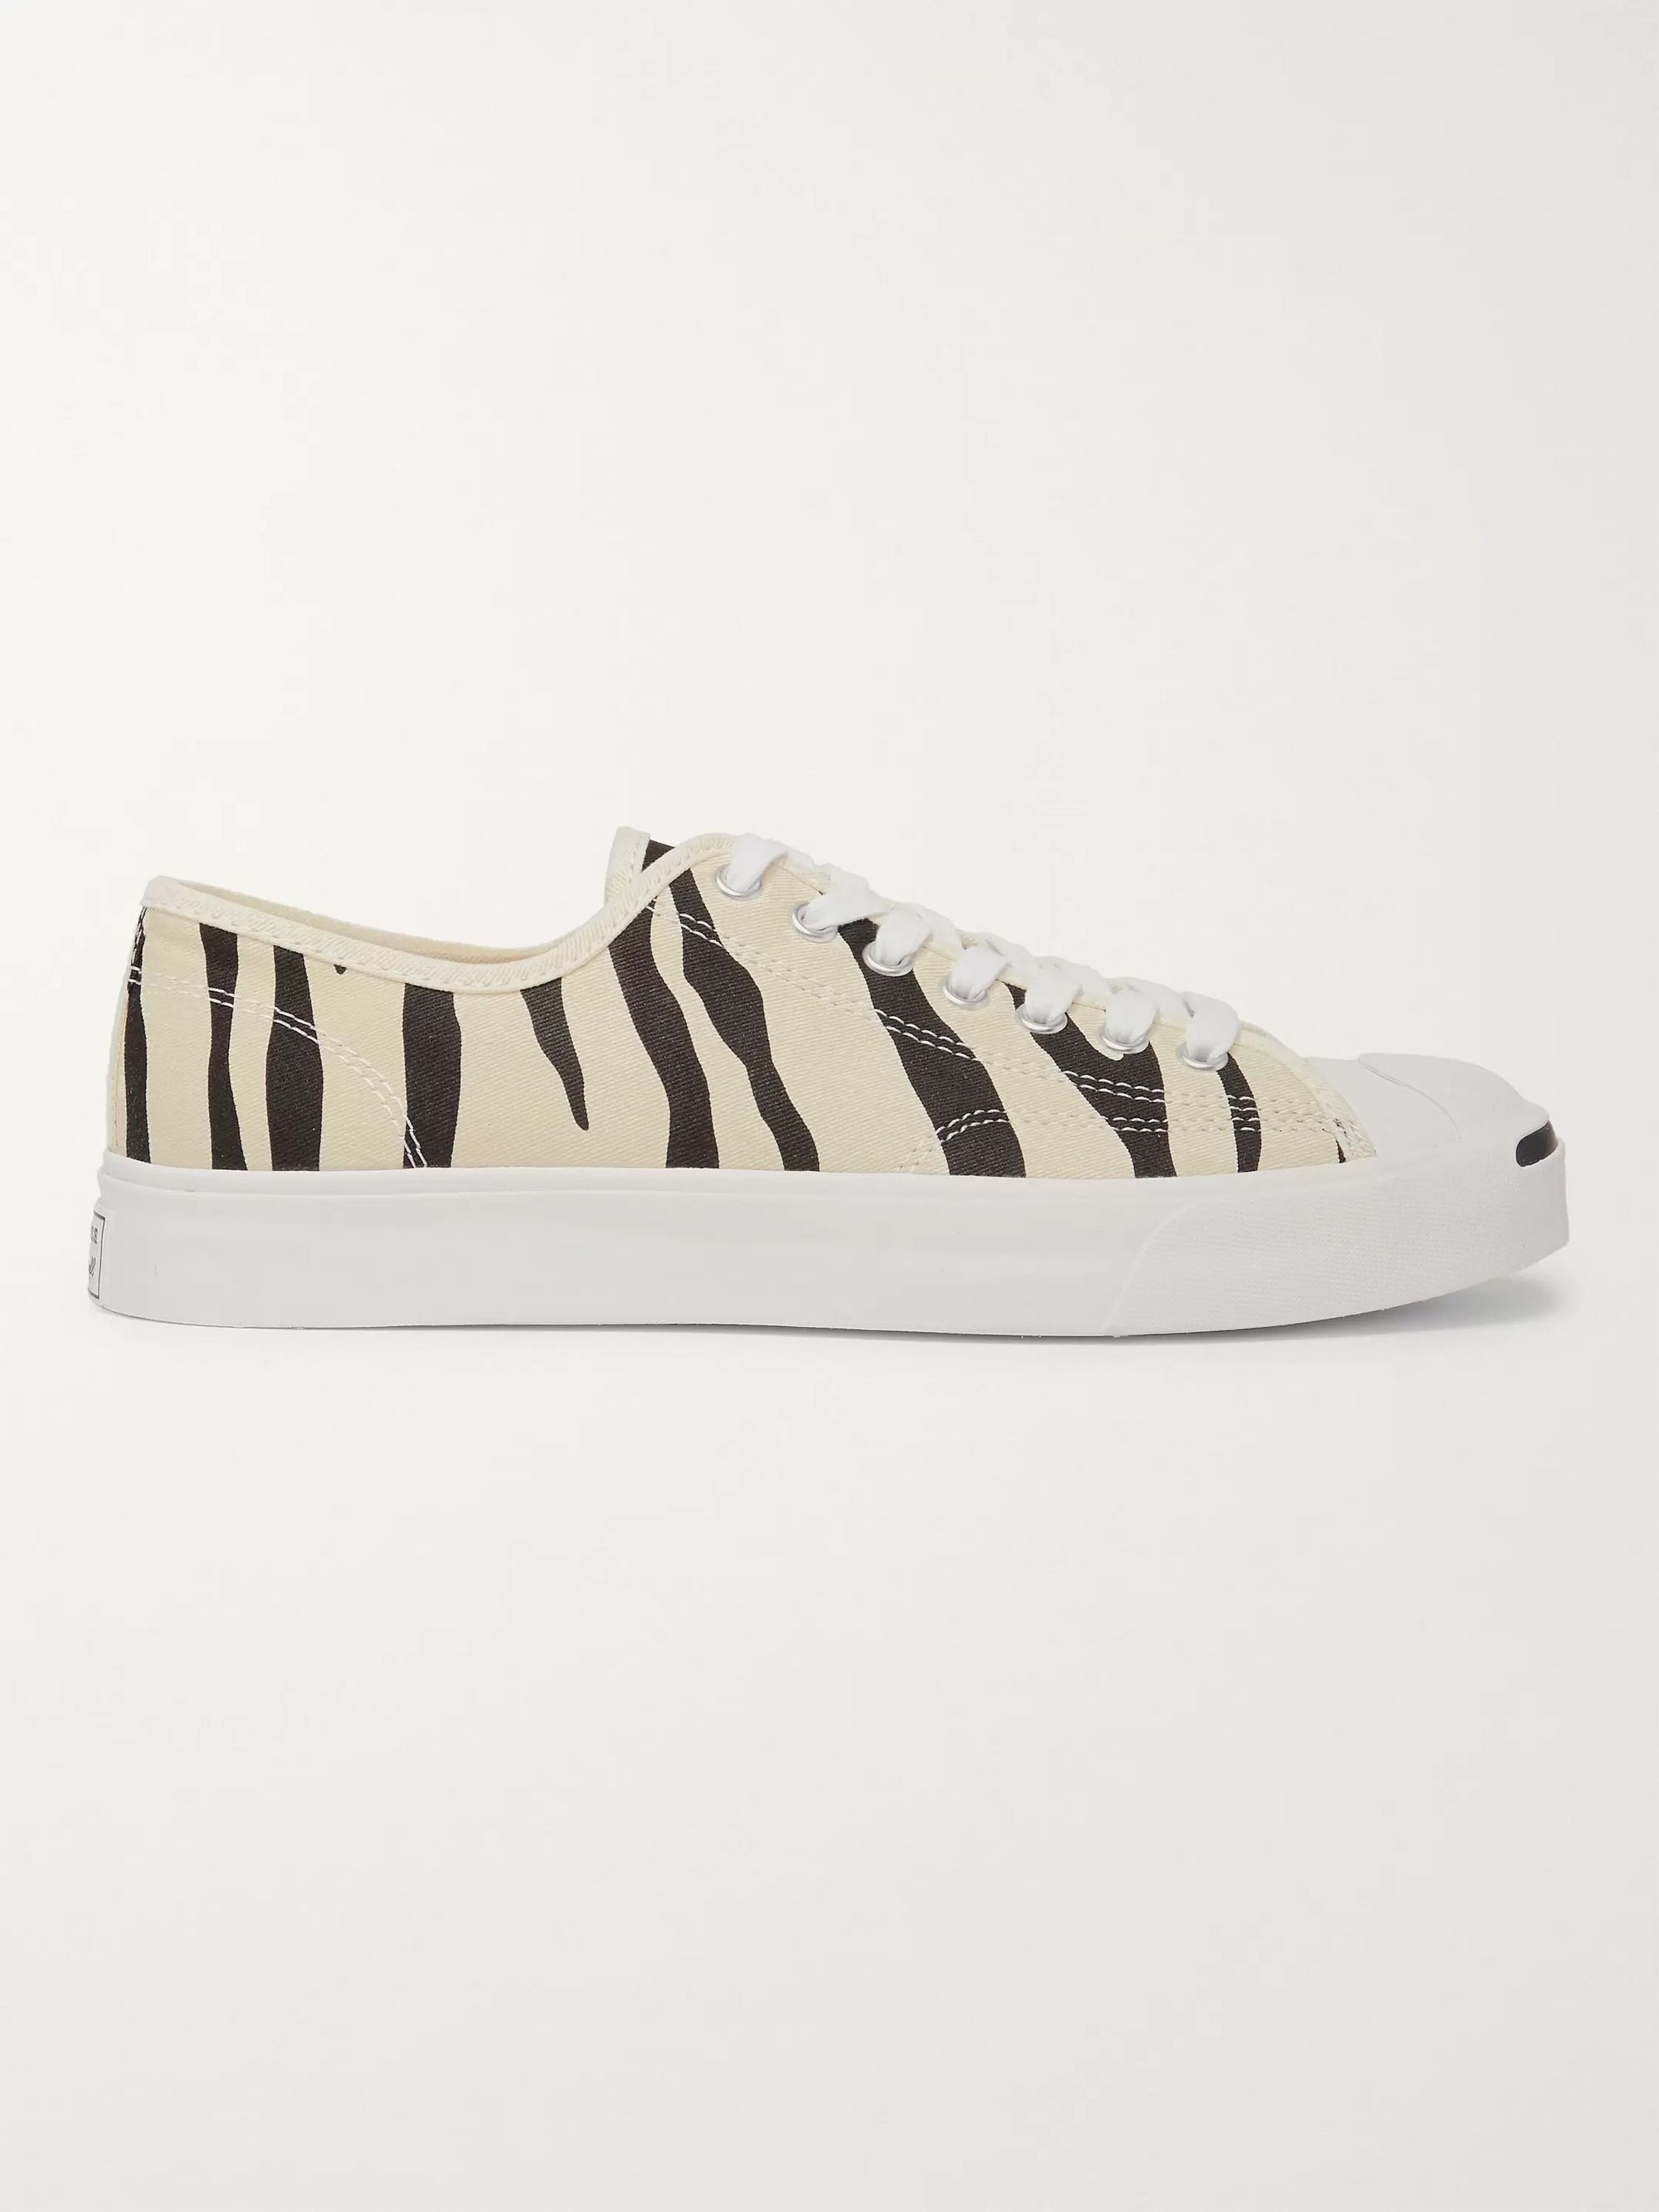 Converse Jack Purcell OX Animal-Print Canvas Sneakers